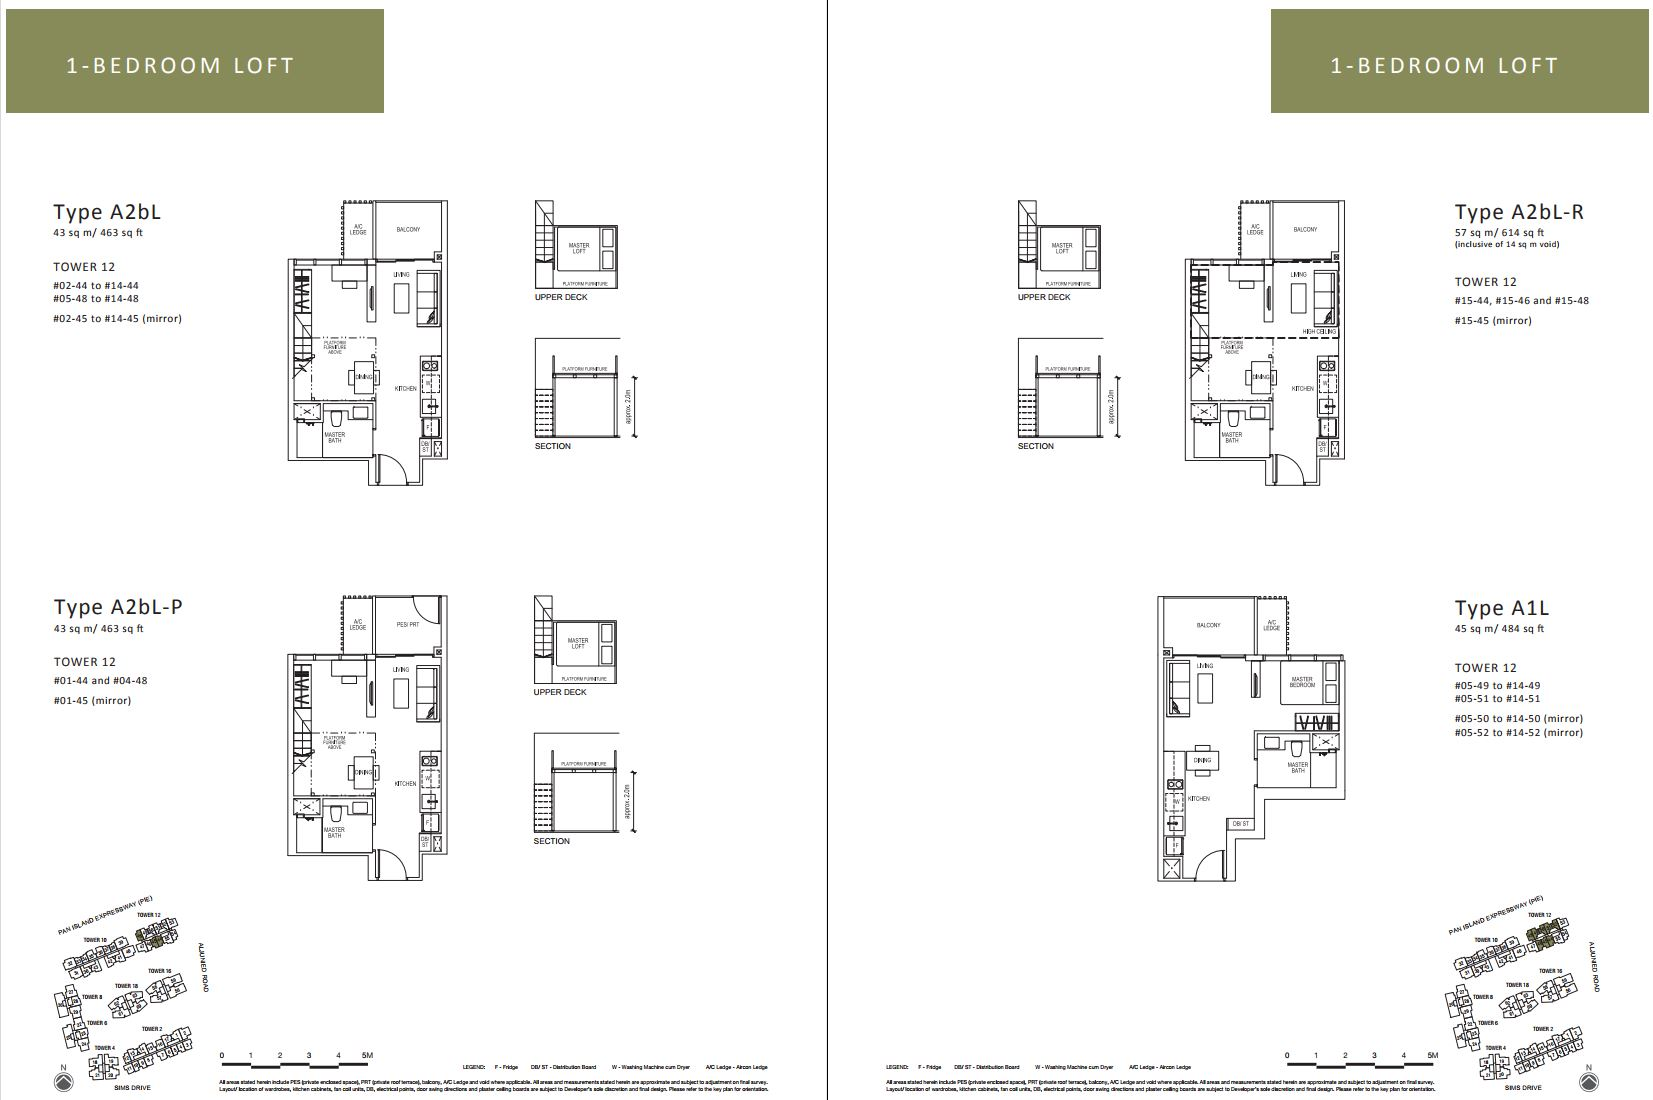 Sims Urban Oasis FloorPlan - 1 Bedroom Loft_1